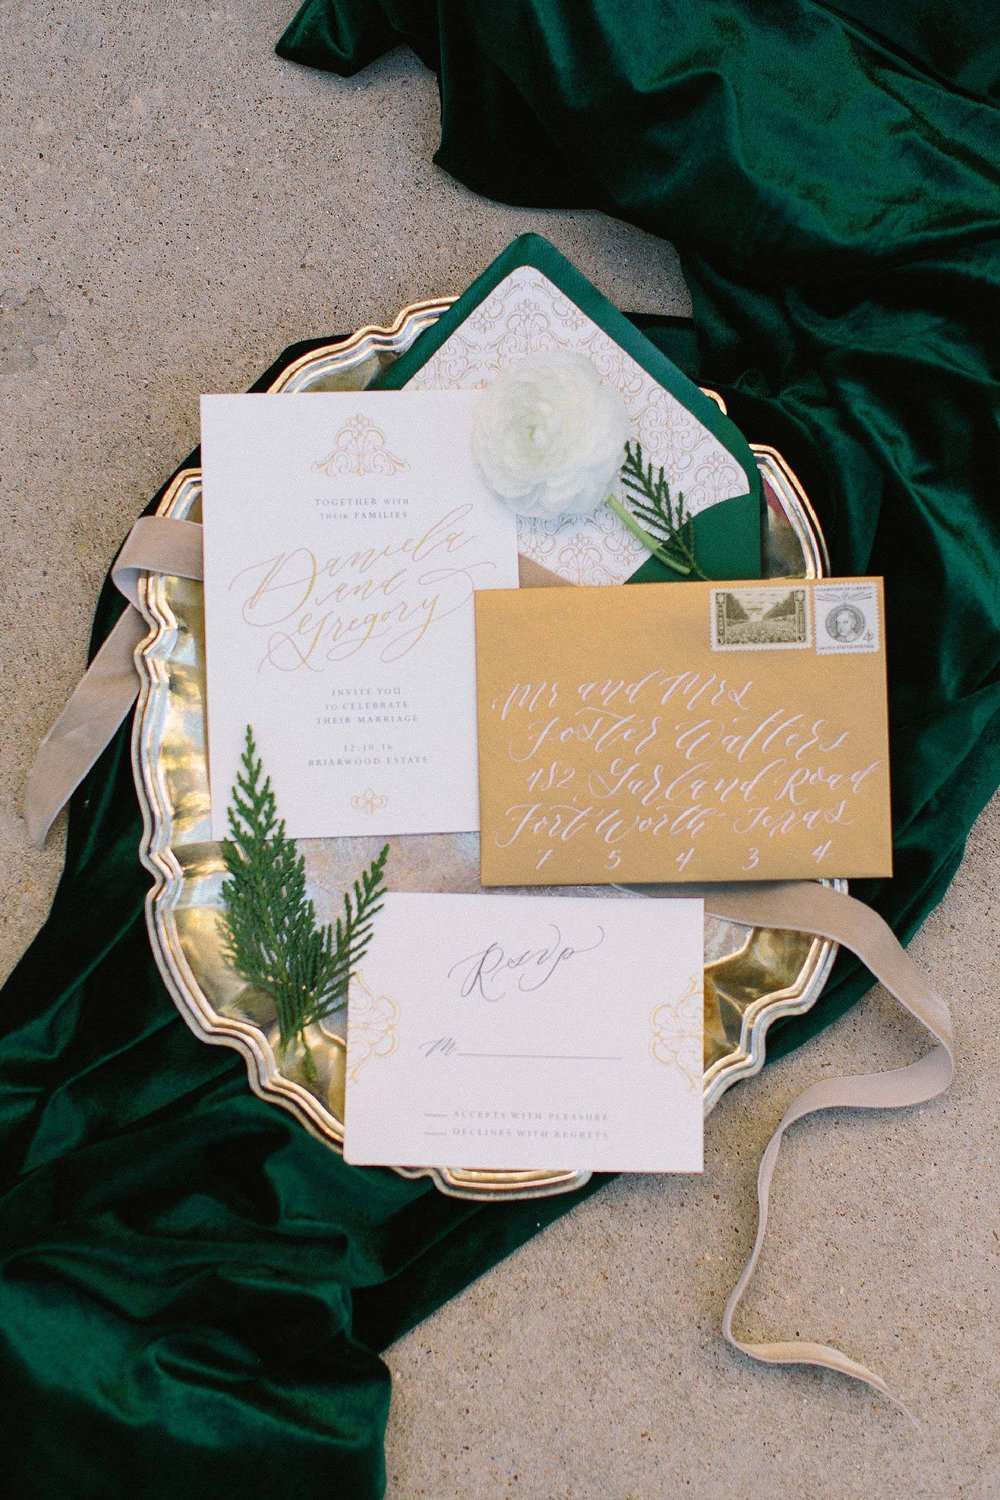 aristide mansfield wedding green and gold invitations on velvet green fabric